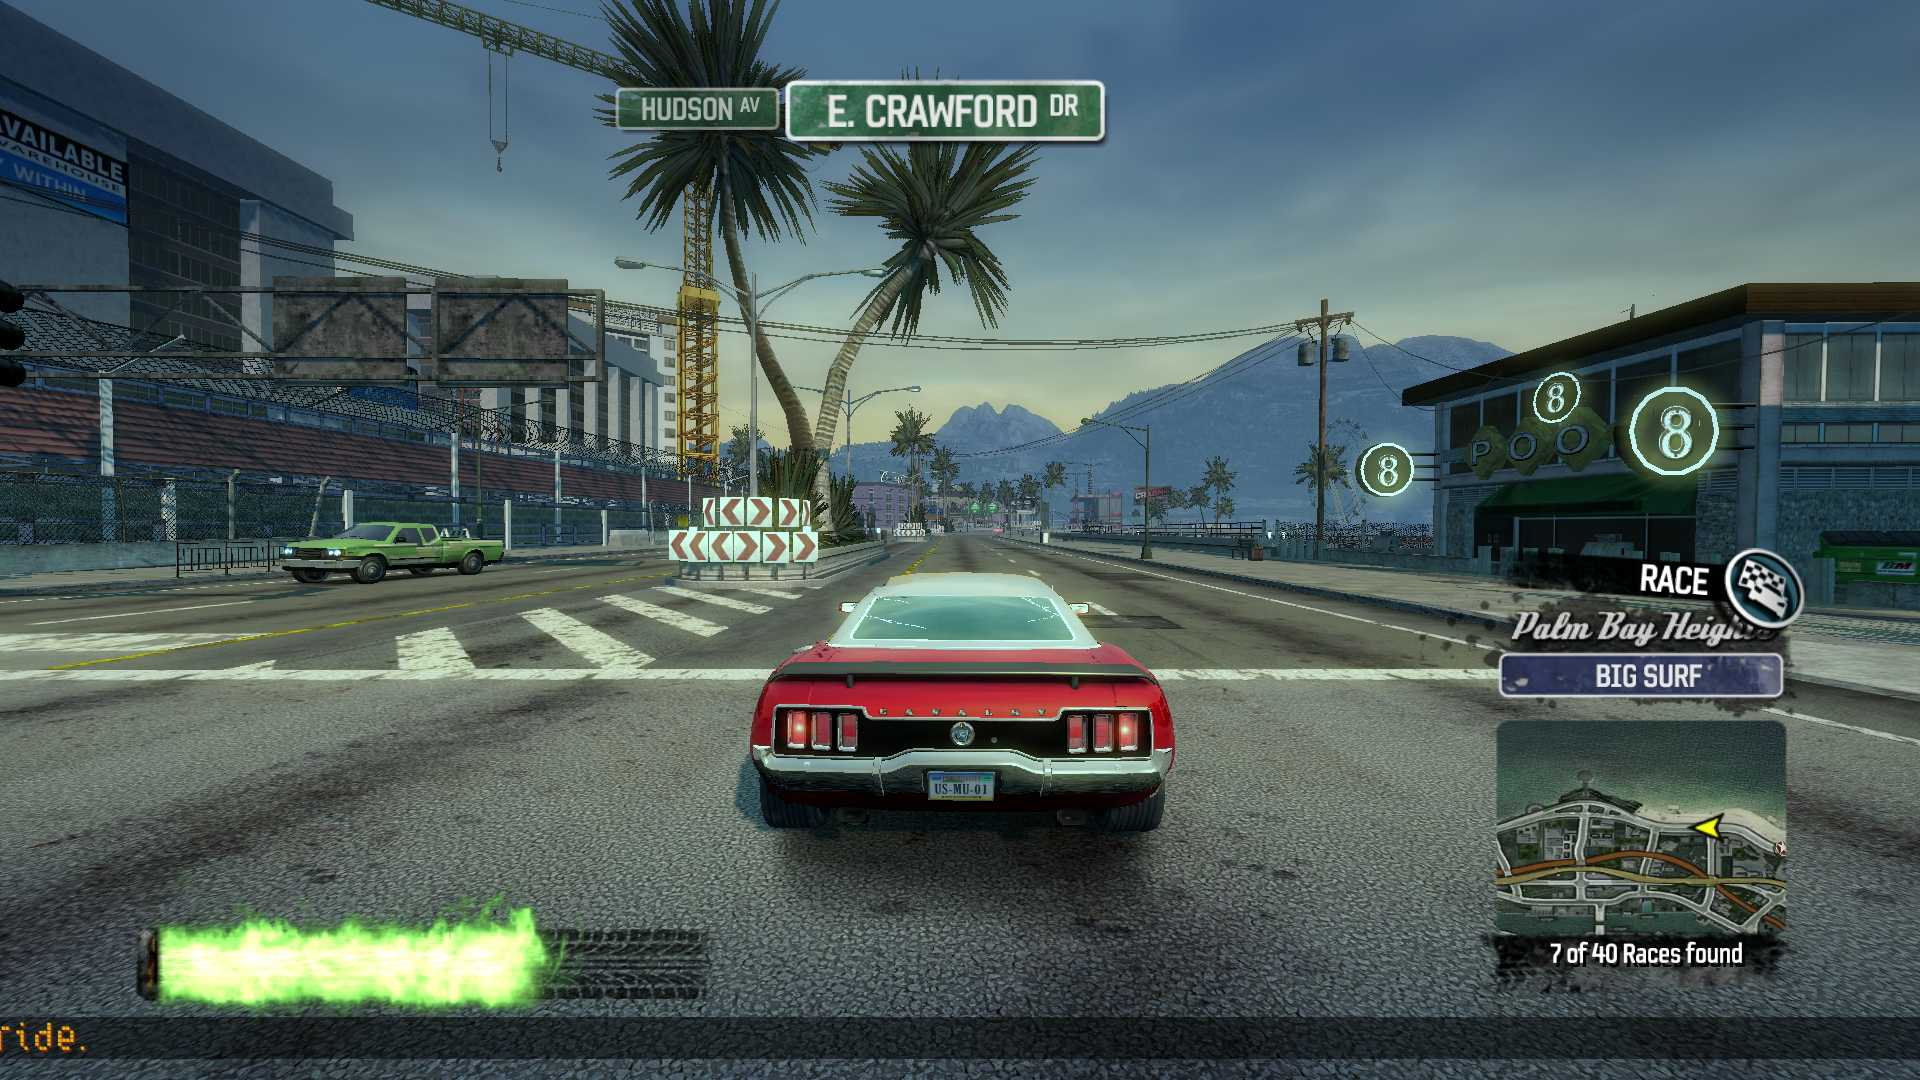 download setup of burnout paradise game for desktop or laptop in highly compressed